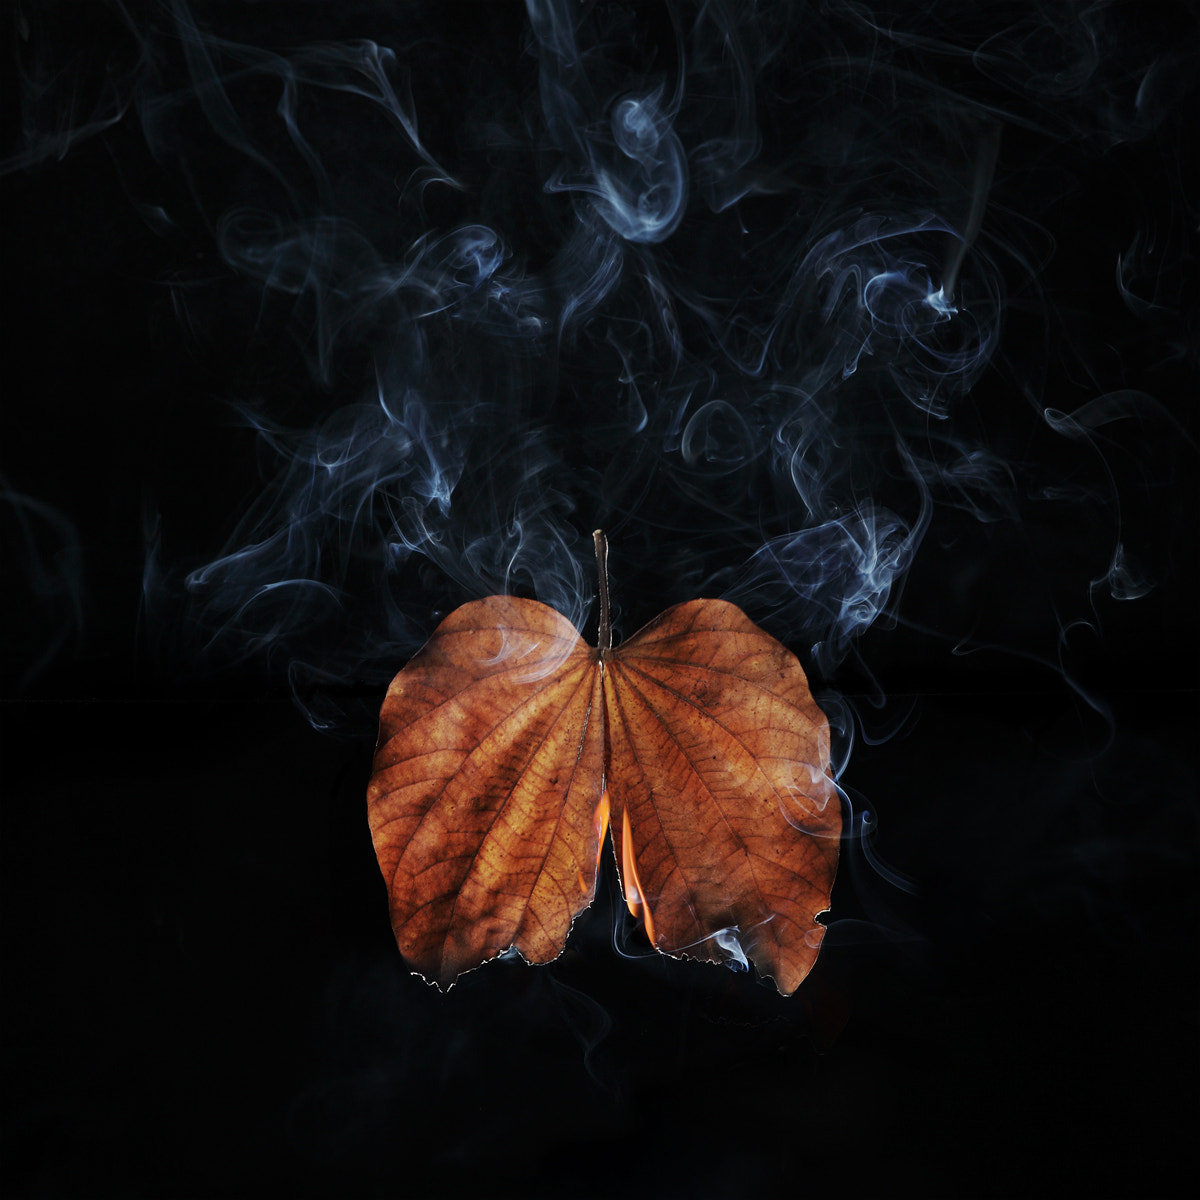 Photograph Stop burning leaves = Stop burning lungs. by Suphakaln Wongcompune on 500px